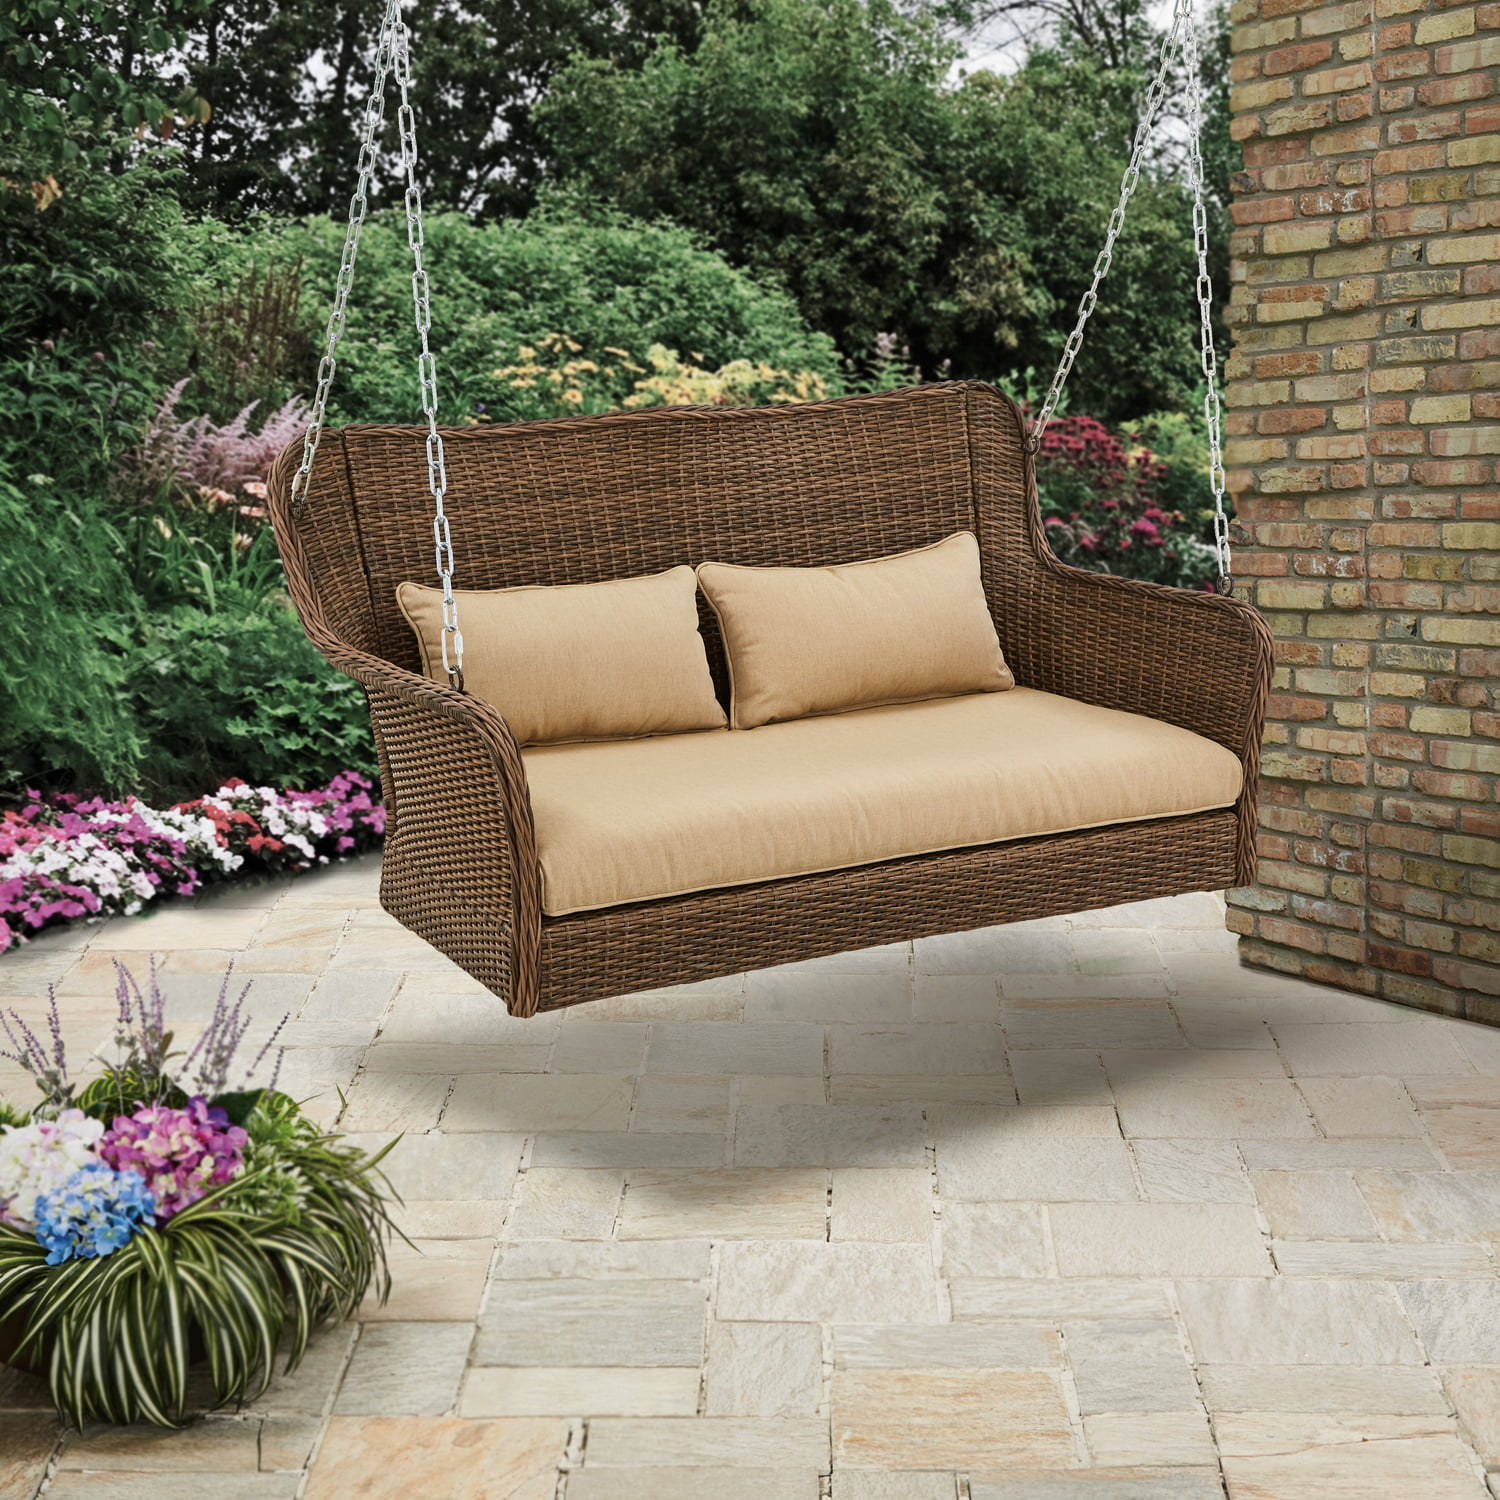 Better Homes & Gardens Camrose Farmhouse Wicker Outdoor Porch Swing by YOTRIO CORPORATION